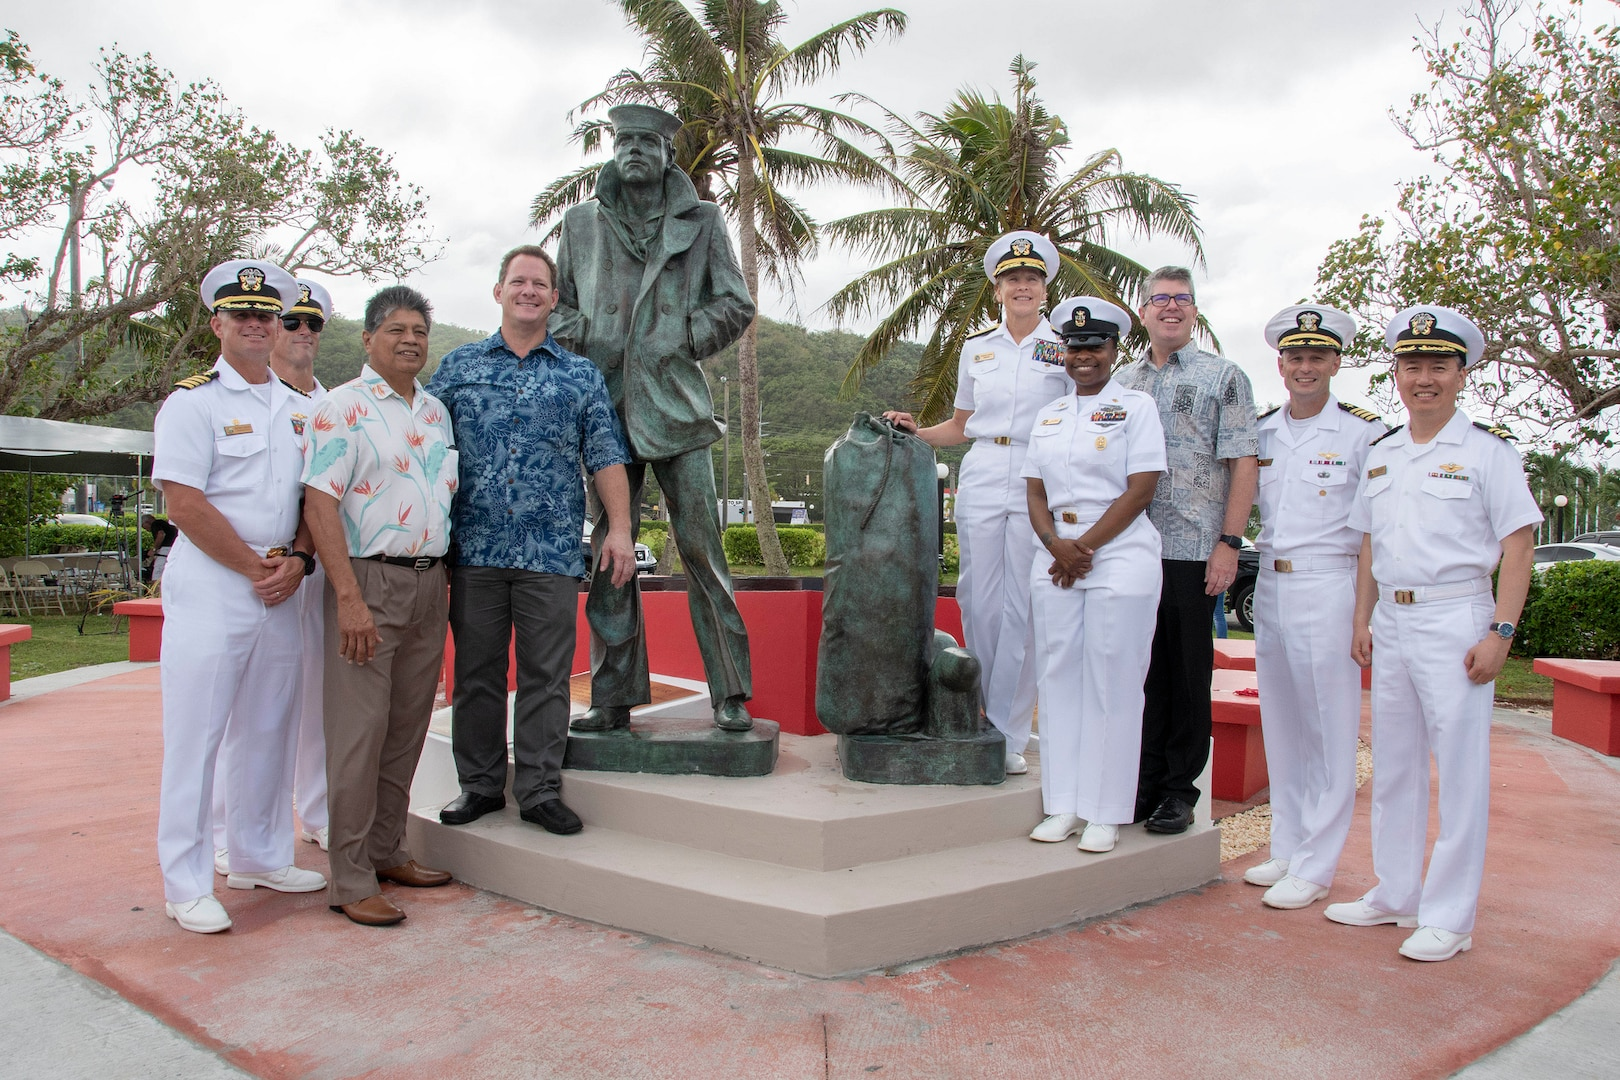 Unveiled: Lone Sailor Statue Stands Watch in Guam